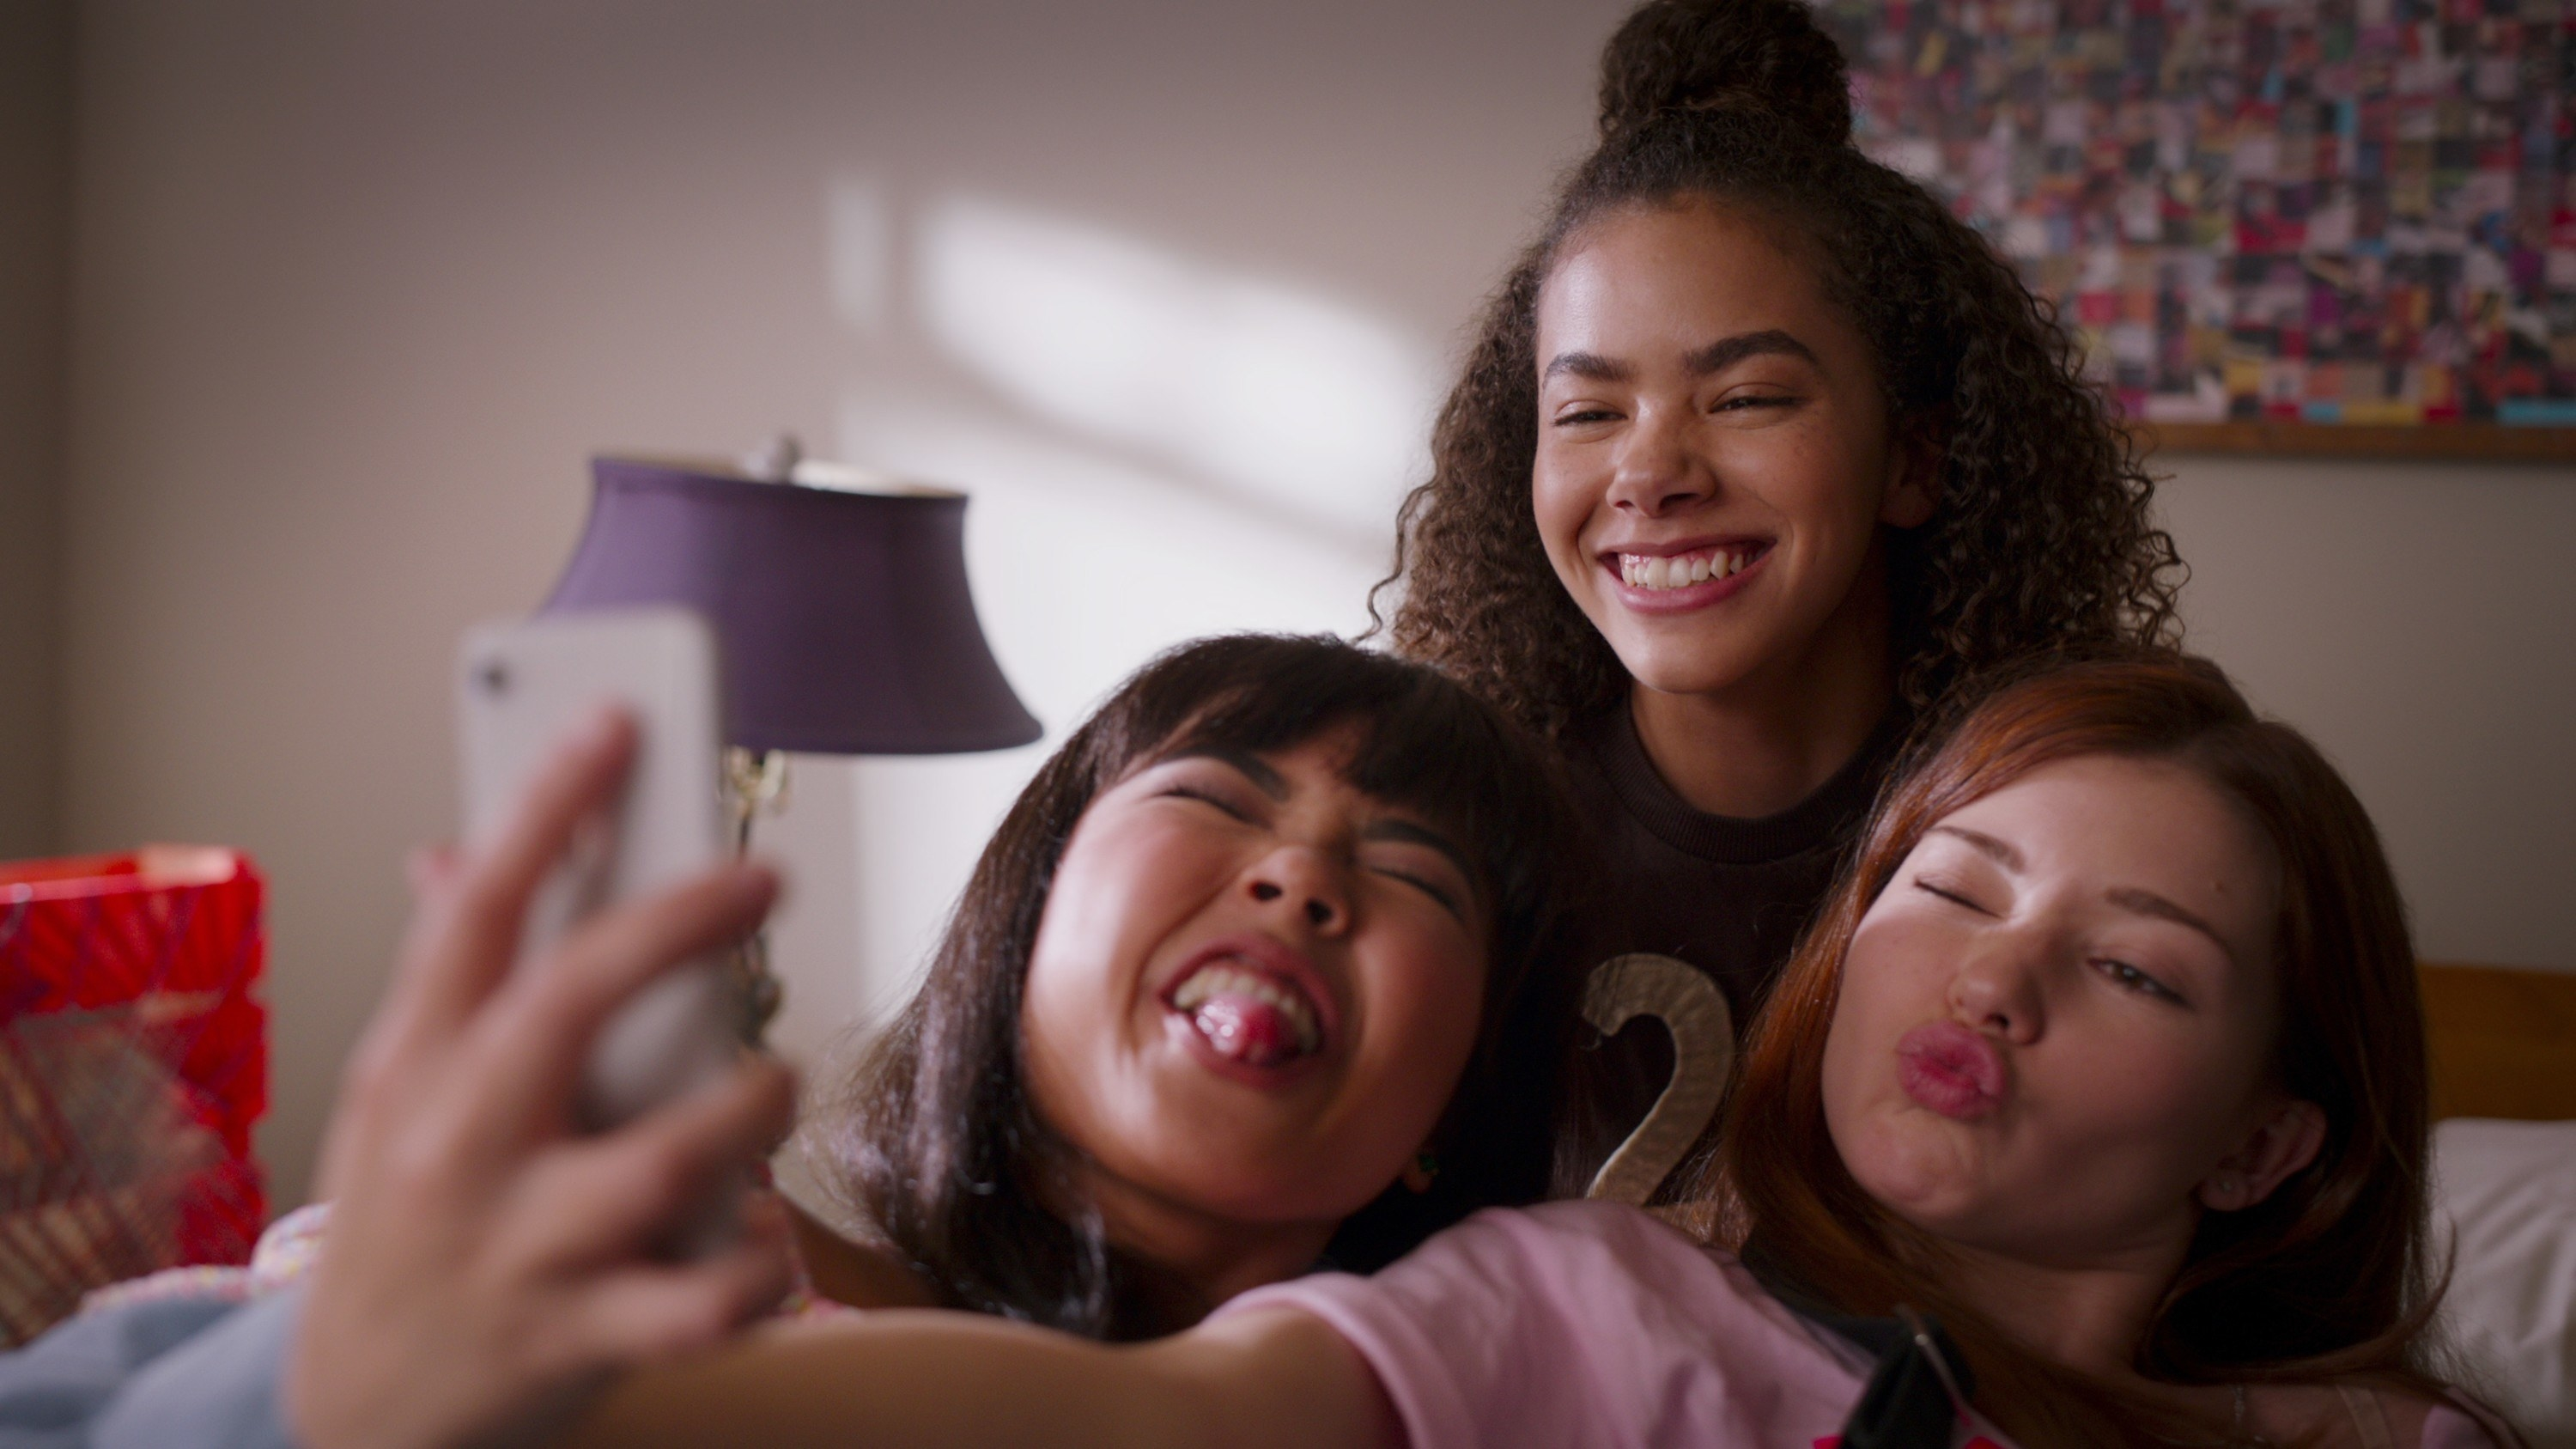 Ginny Norah and Abby taking a selfie together